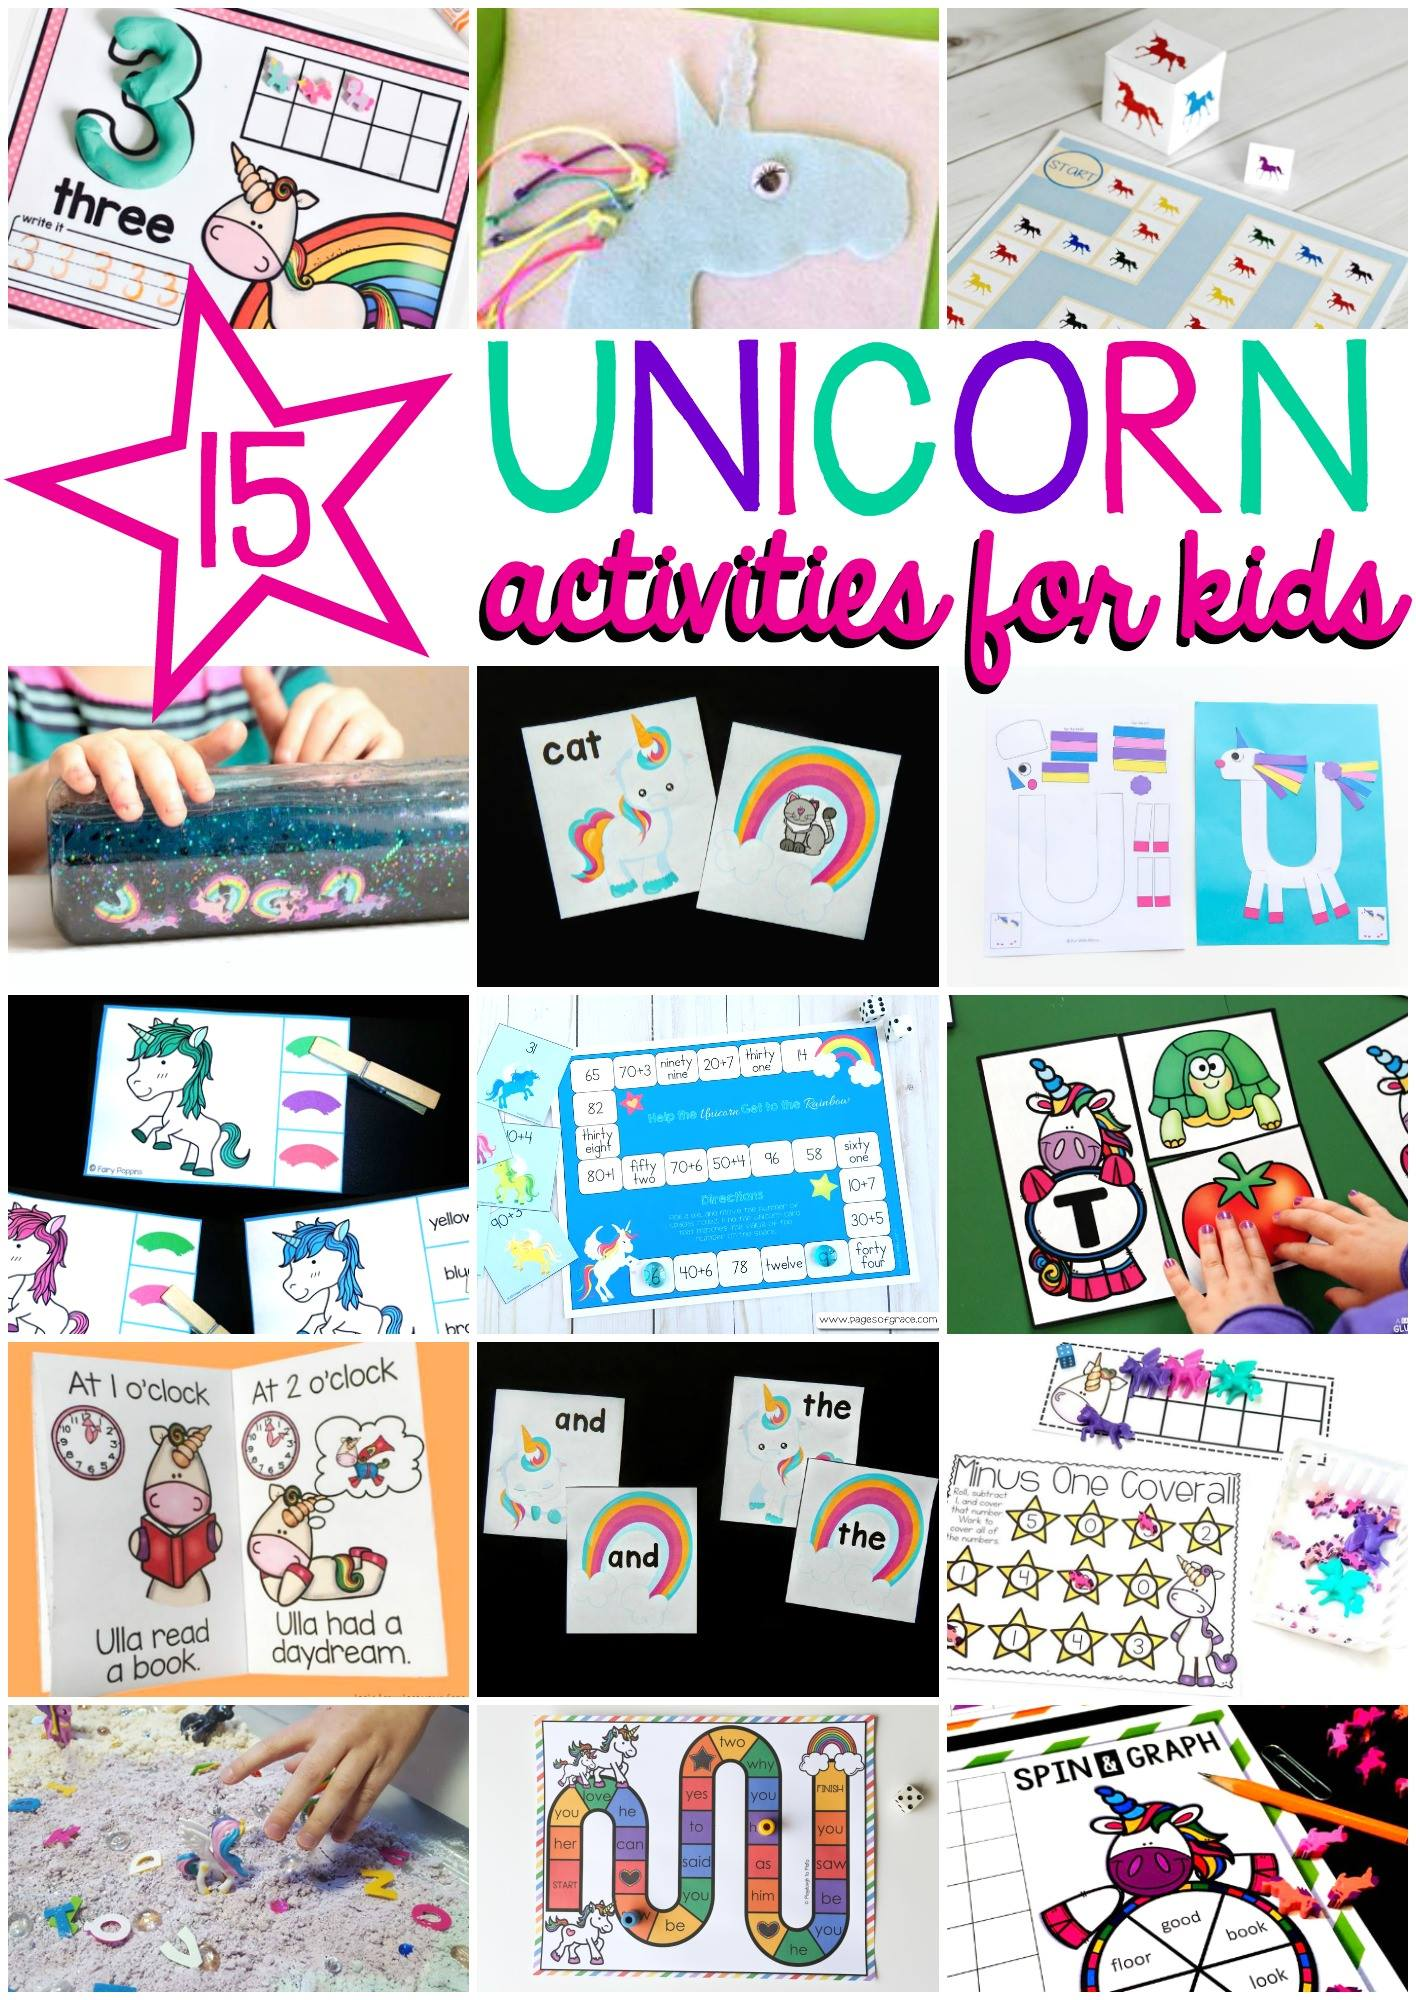 Awesome unicorn activities for kids!